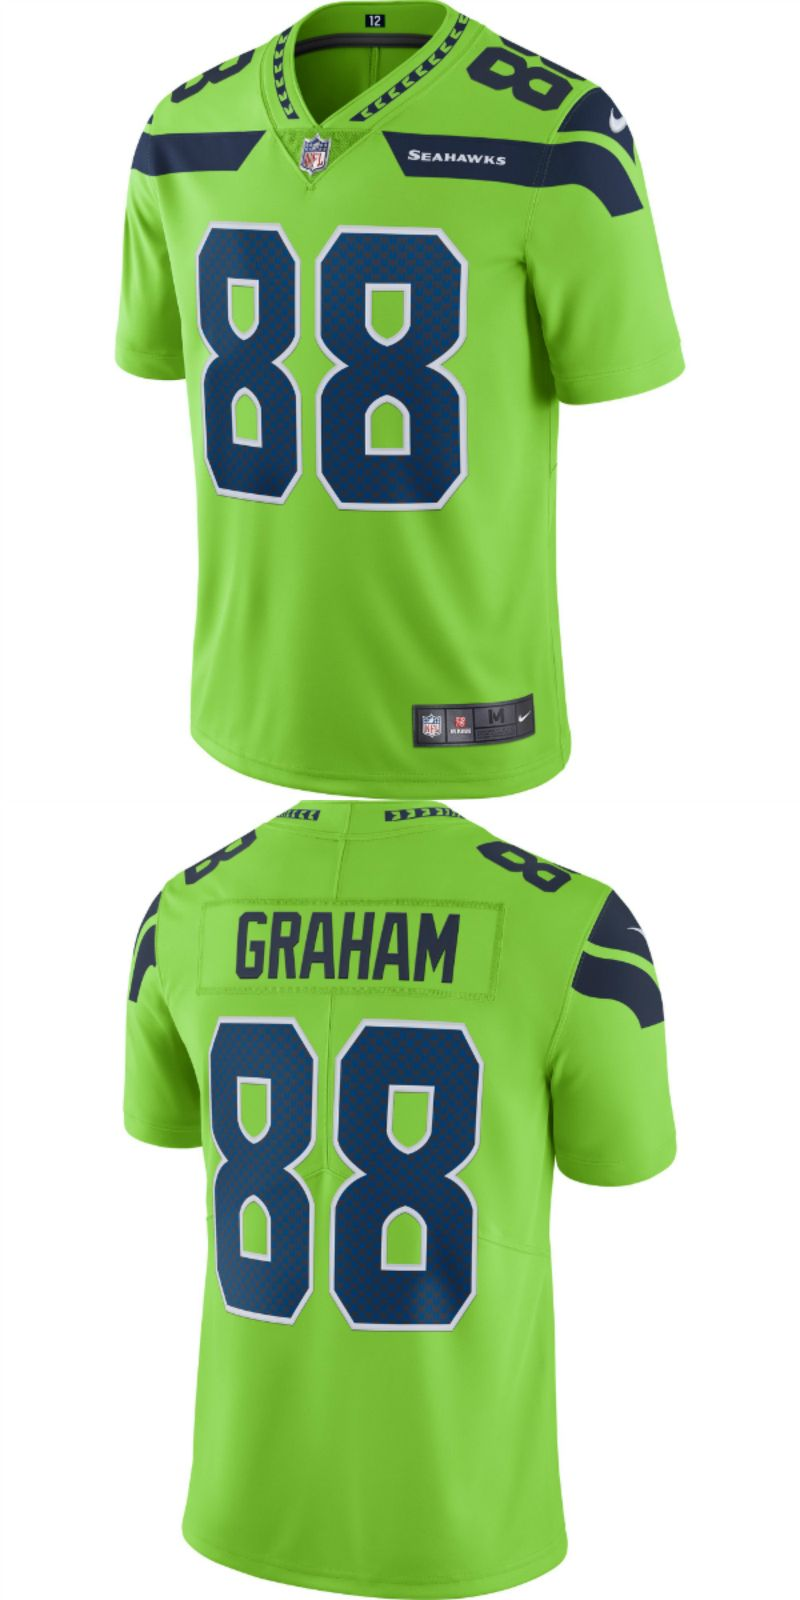 official photos 91613 16356 UP TO 70% OFF. Jimmy Graham Seattle Seahawks Nike Vapor ...